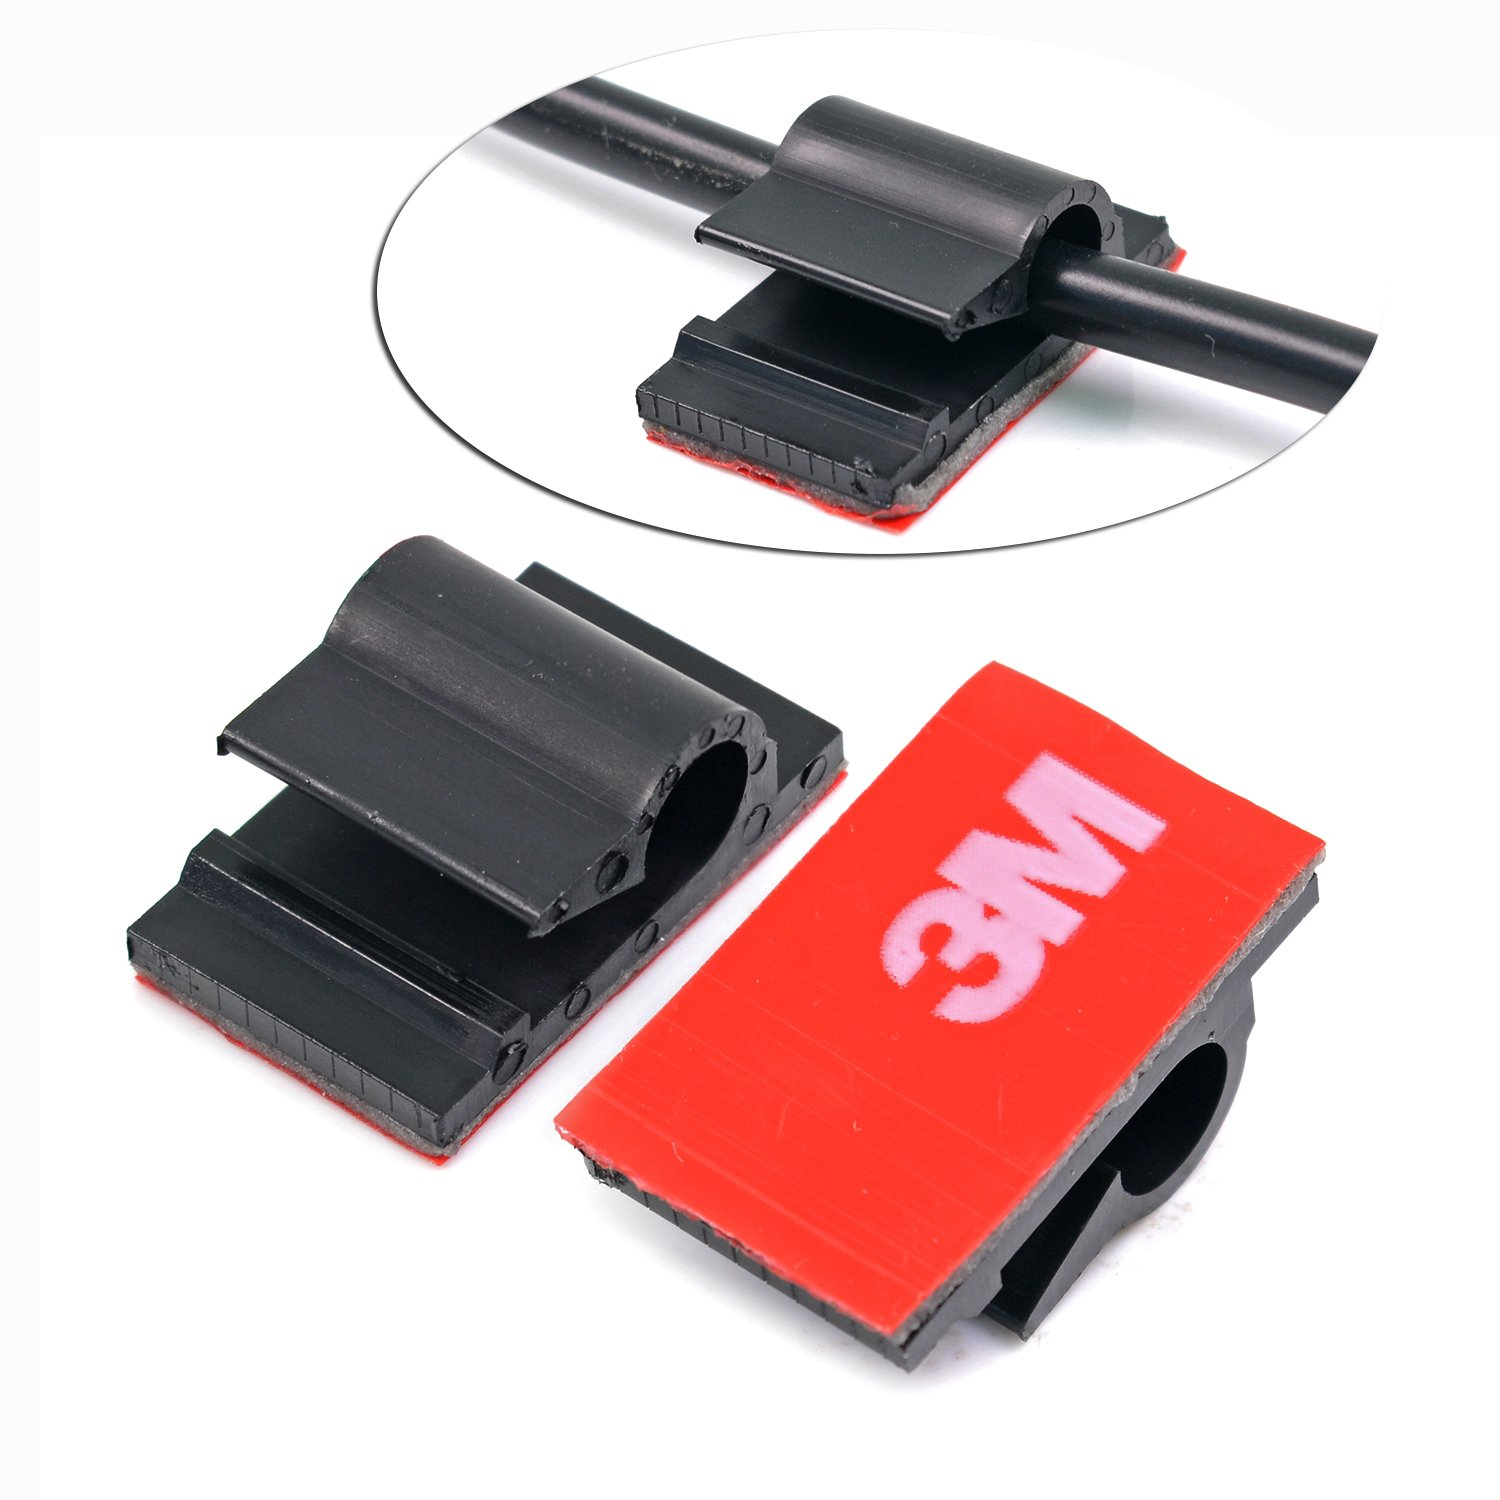 Inewcow 3m Adhesive Tape Car Cable Holder Wall Wire Advanced Race Wiring Clips To Clamp Lines 20pcs Black Automotive